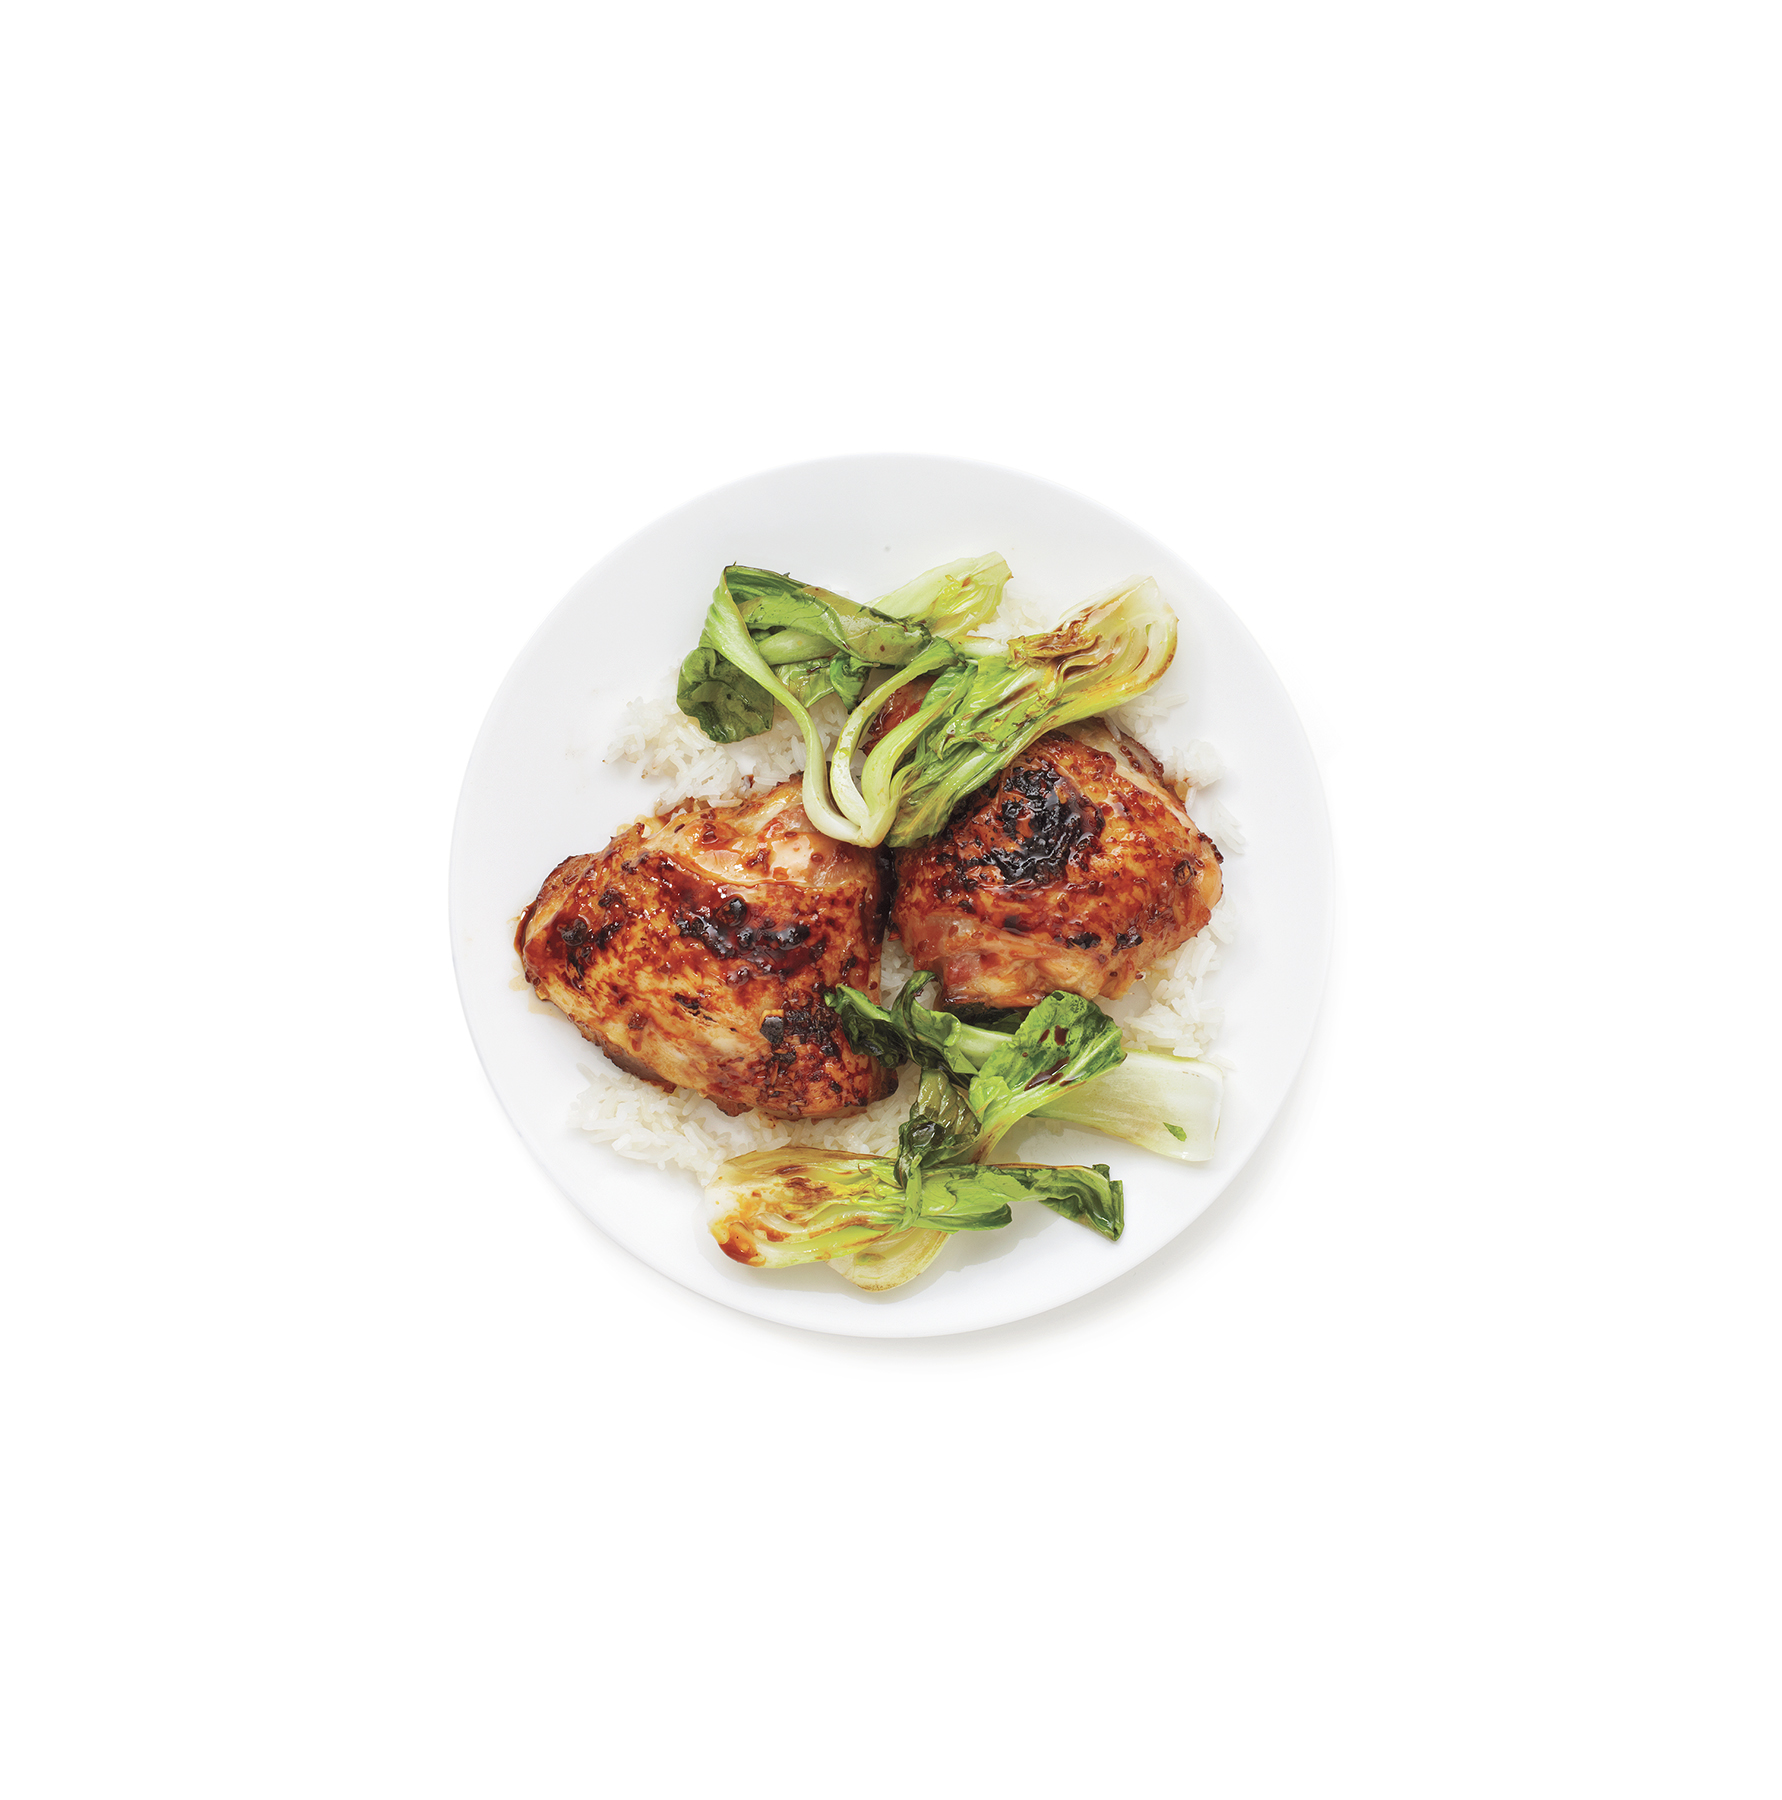 Teriyaki Chicken With Bok Choy, one of our great chicken thigh recipes